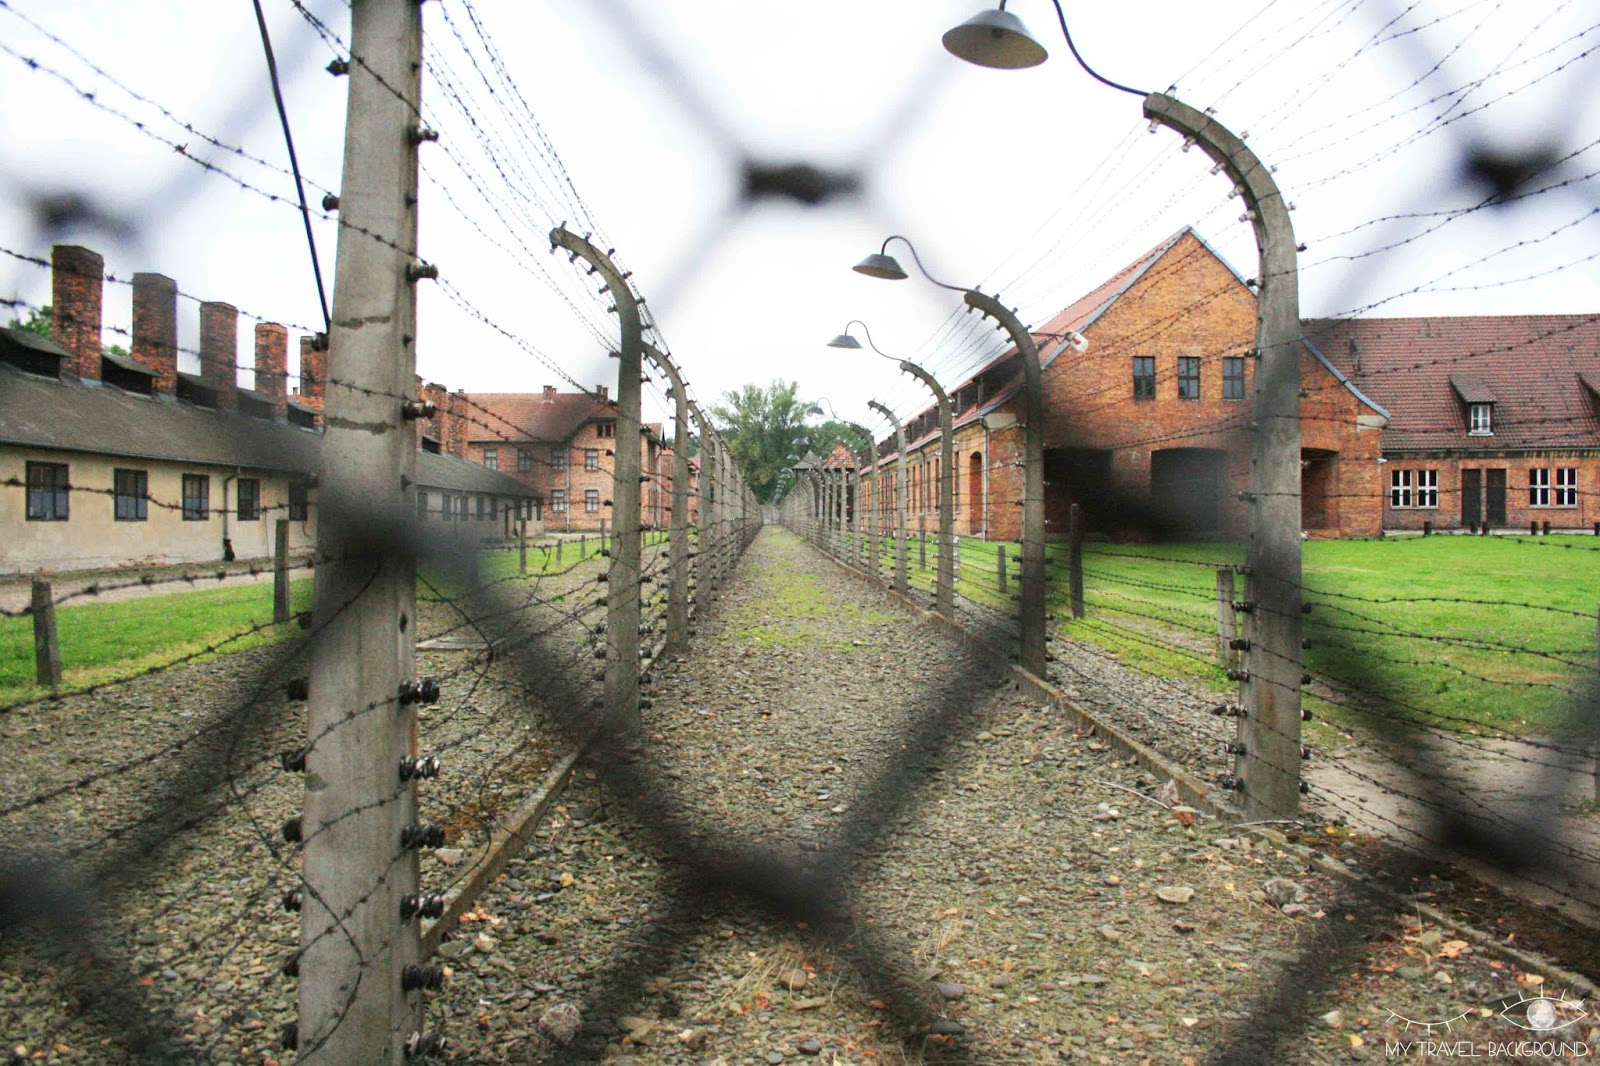 My Travel Background : cartes postales de Pologne - Auschwitz